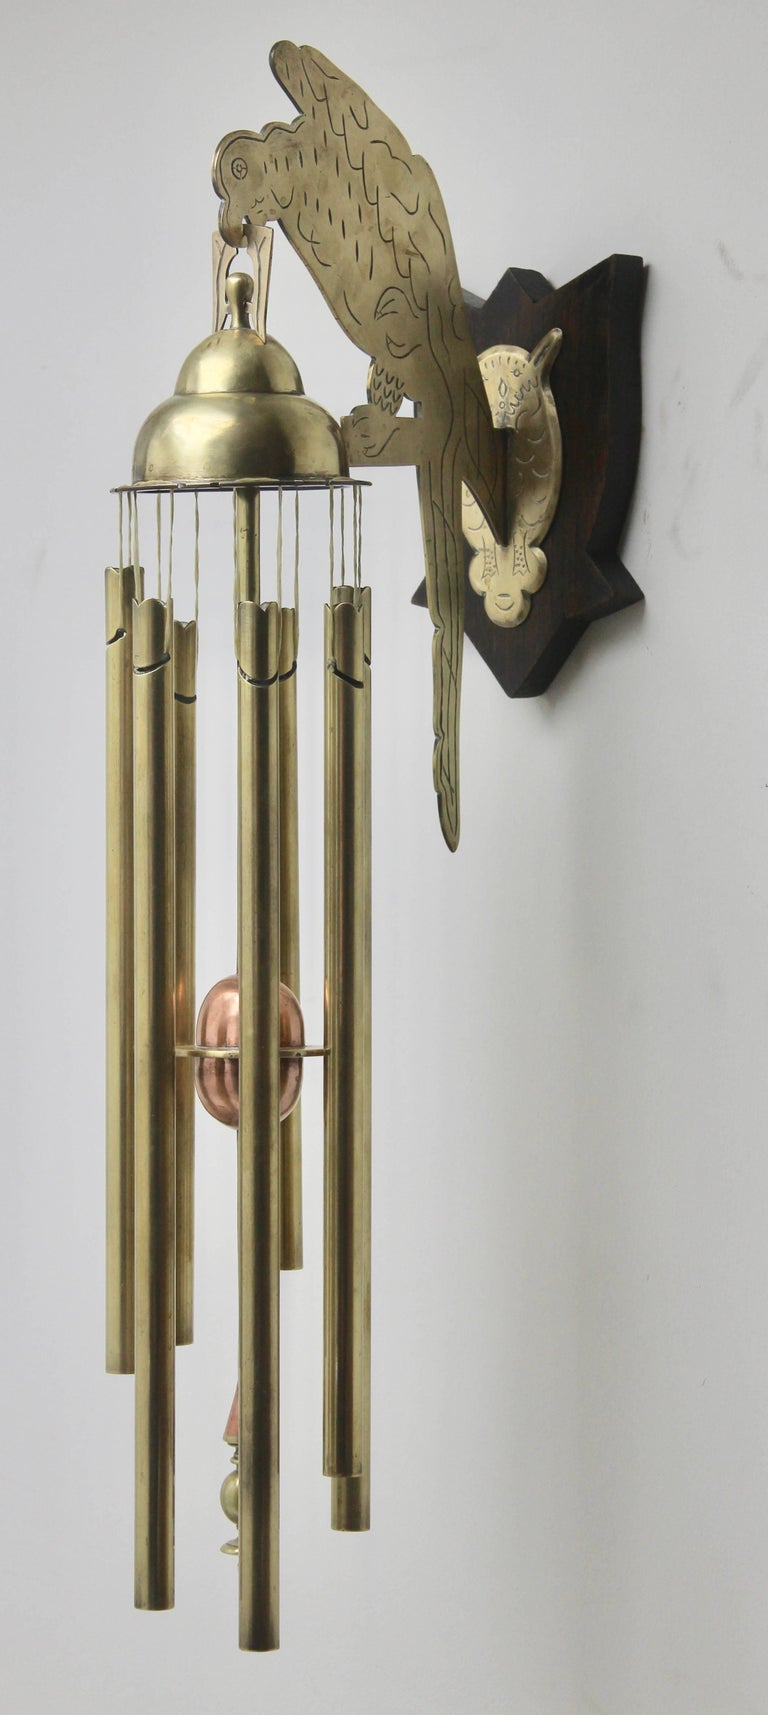 Hand-Crafted Arts & Crafts Chime Tubular Bells, Brass Wall Mounted Dinner Gong 'Doorbell' For Sale